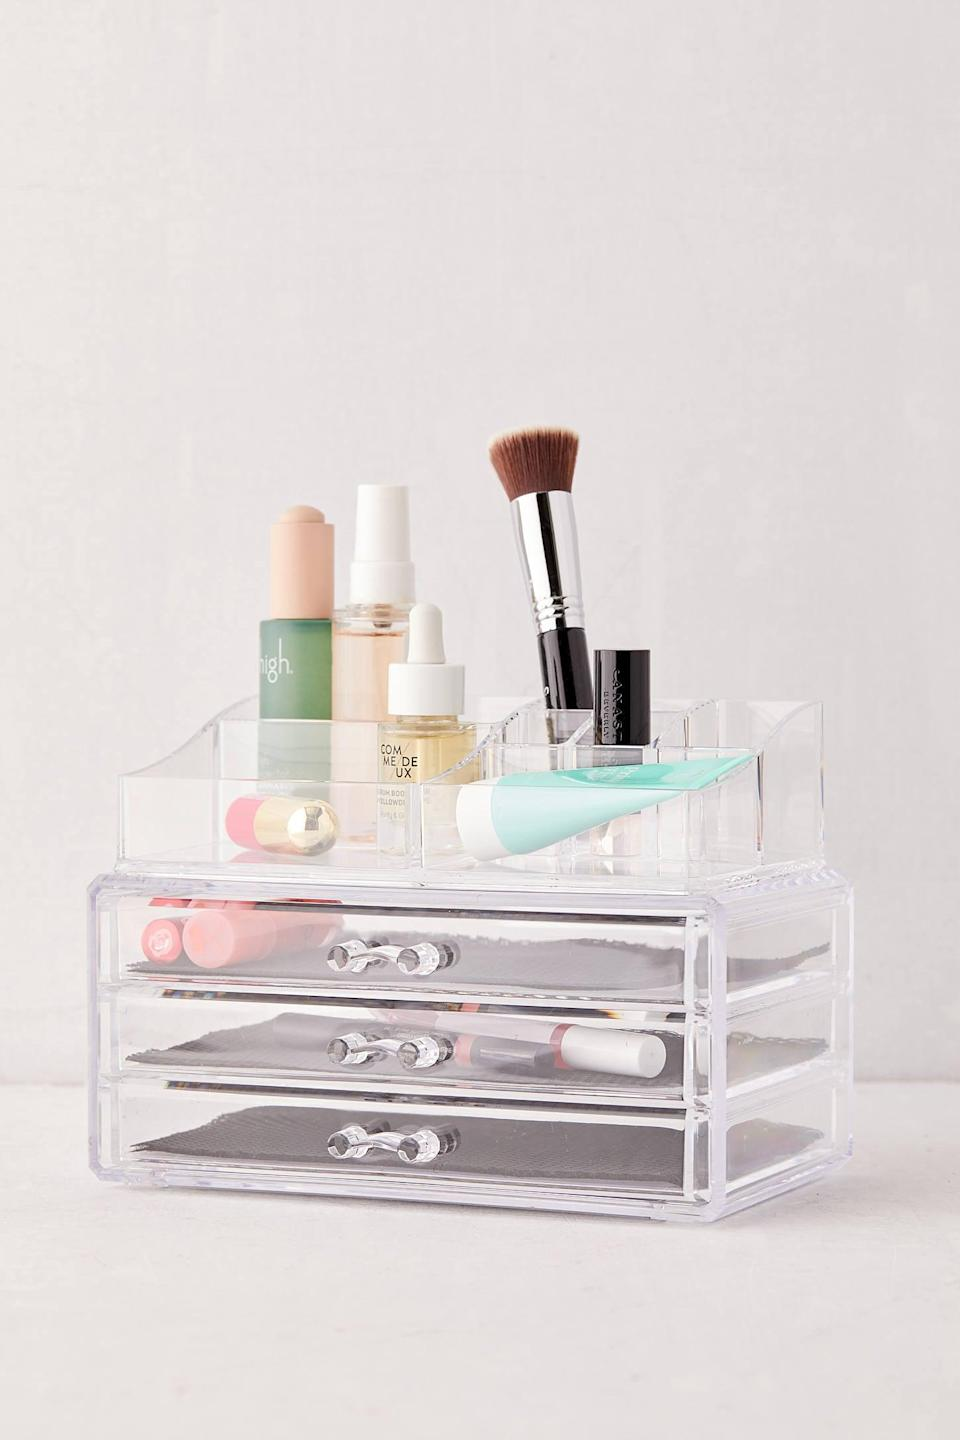 "<p>We all know someone who needs this <a href=""https://www.popsugar.com/buy/Acrylic-Drawer-Makeup-Organizer-551626?p_name=Acrylic%20Drawer%20Makeup%20Organizer&retailer=urbanoutfitters.com&pid=551626&price=29&evar1=casa%3Aus&evar9=47251564&evar98=https%3A%2F%2Fwww.popsugar.com%2Fhome%2Fphoto-gallery%2F47251564%2Fimage%2F47252504%2FAcrylic-Drawer-Makeup-Organizer&list1=cleaning%2Corganization%2Cspring%20cleaning%2Csmall%20space%20living%2Cbathrooms%2Chome%20organization&prop13=mobile&pdata=1"" class=""link rapid-noclick-resp"" rel=""nofollow noopener"" target=""_blank"" data-ylk=""slk:Acrylic Drawer Makeup Organizer"">Acrylic Drawer Makeup Organizer</a> ($29).</p>"